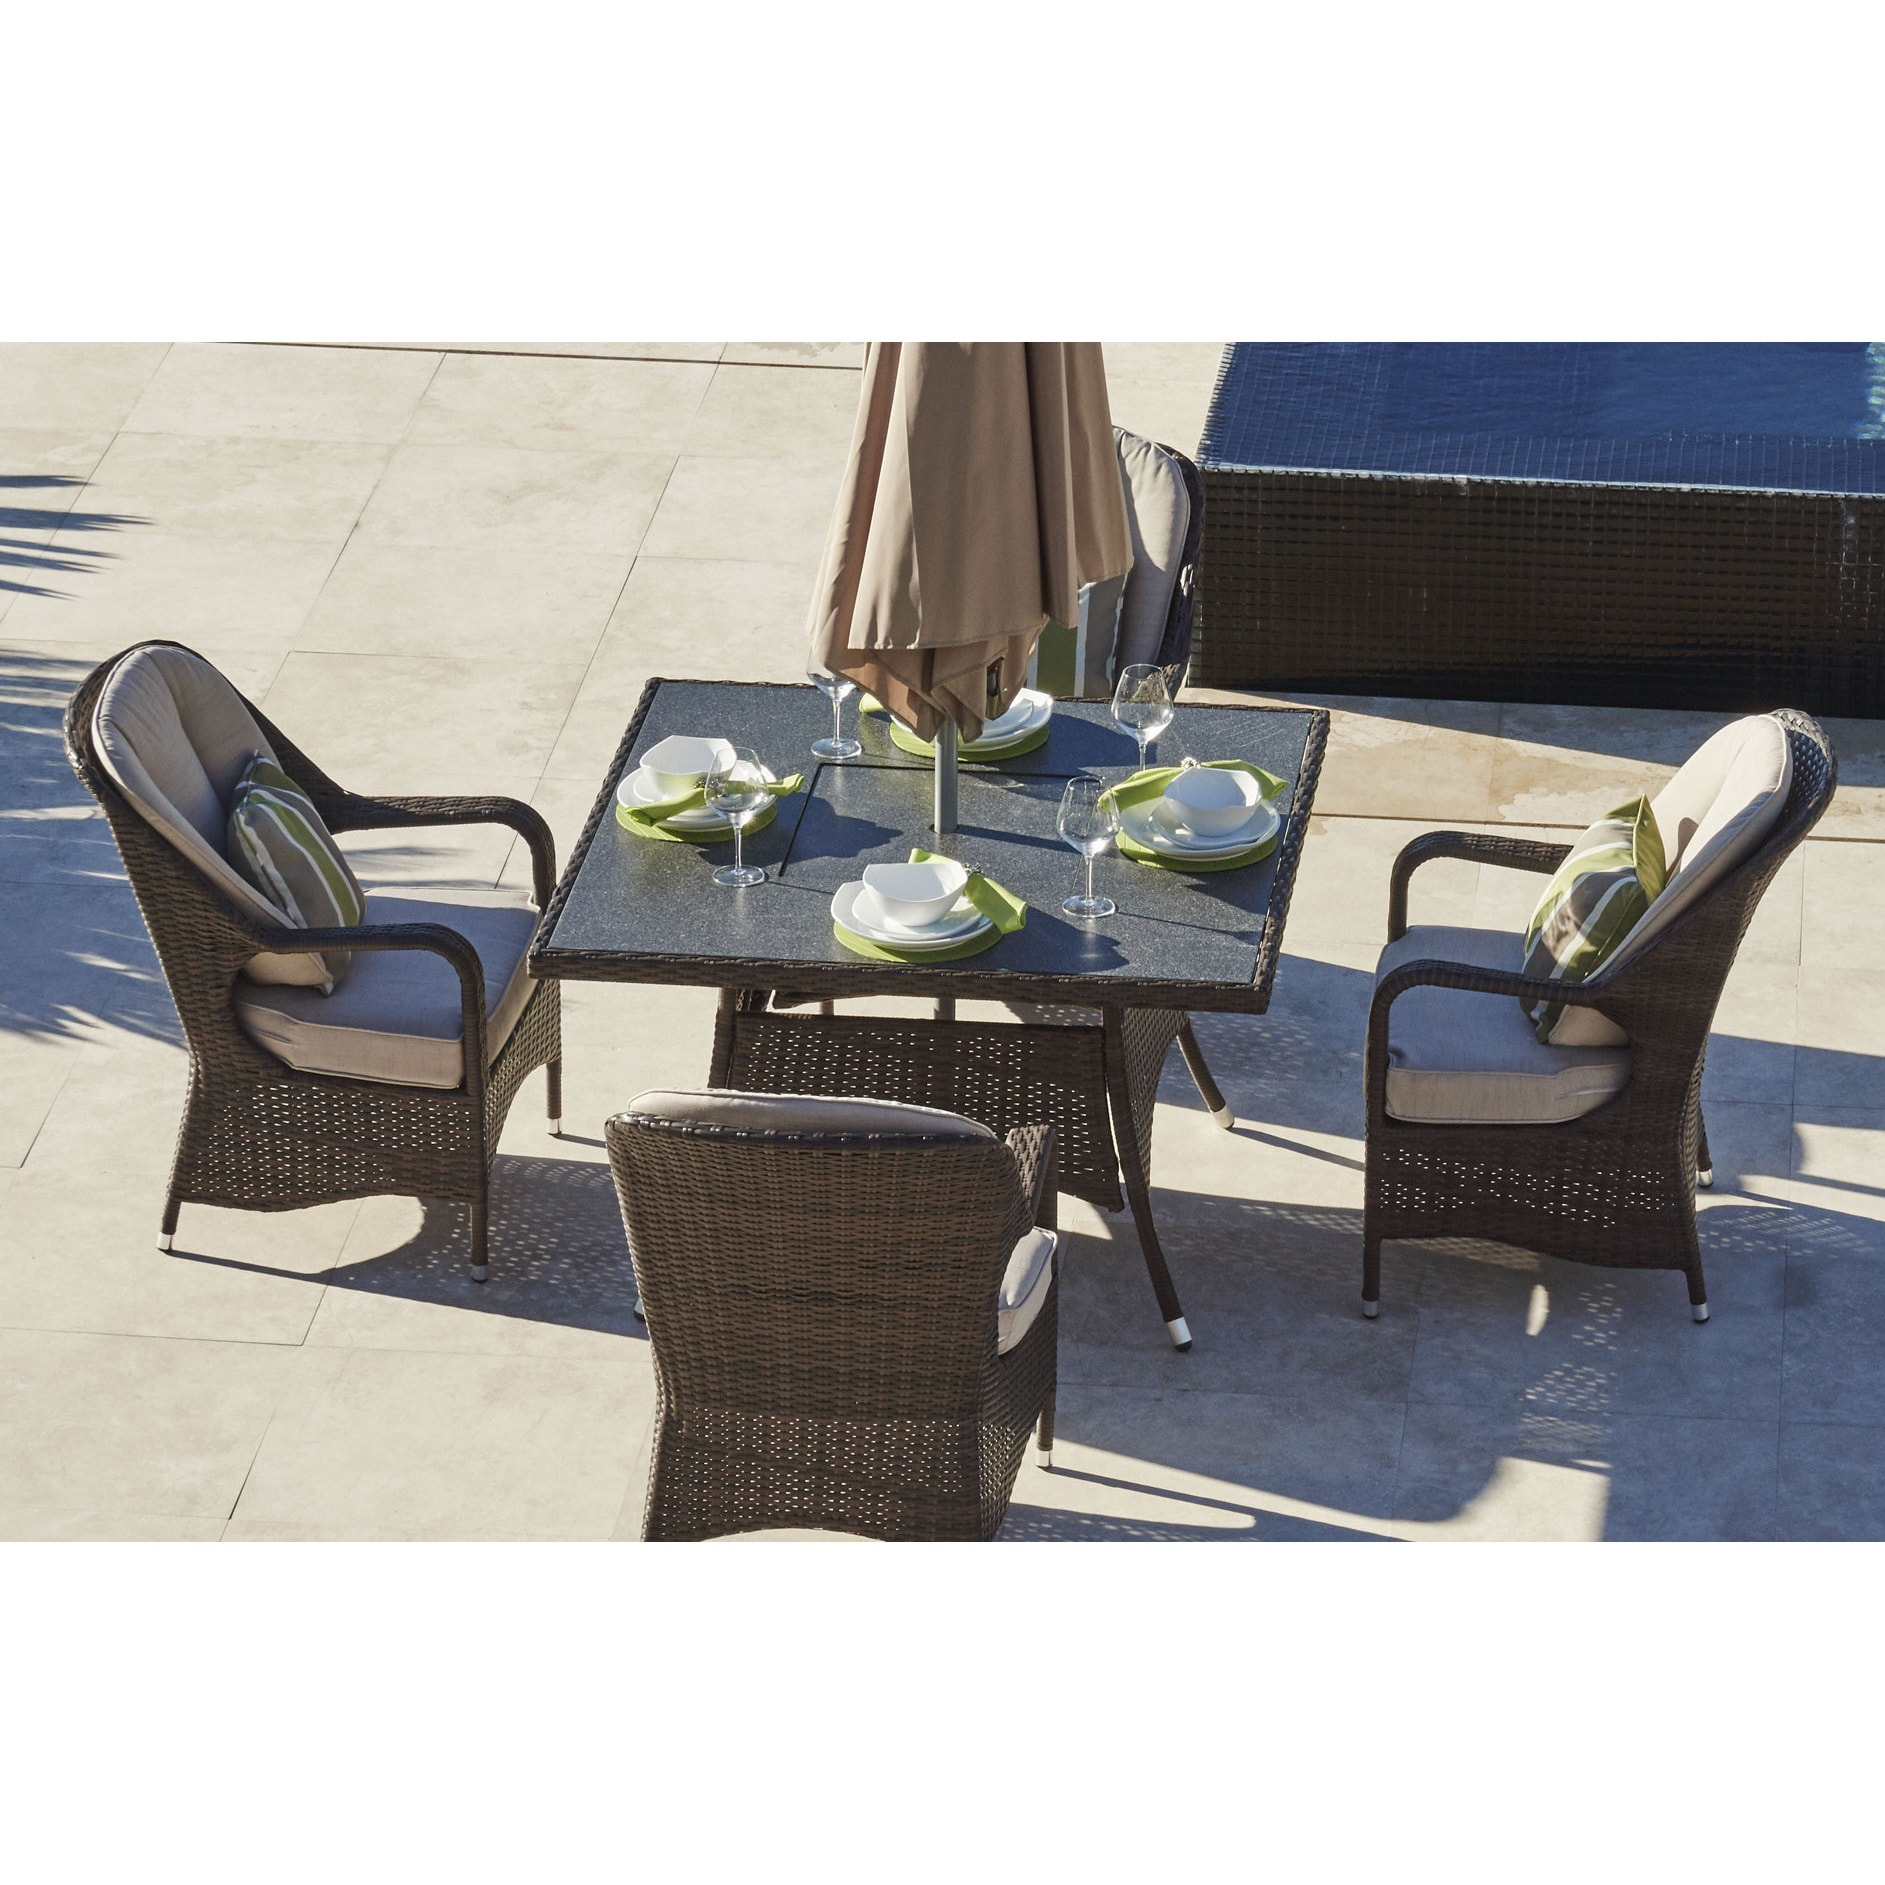 Fire Pit Table Combo   Decoration Items Image